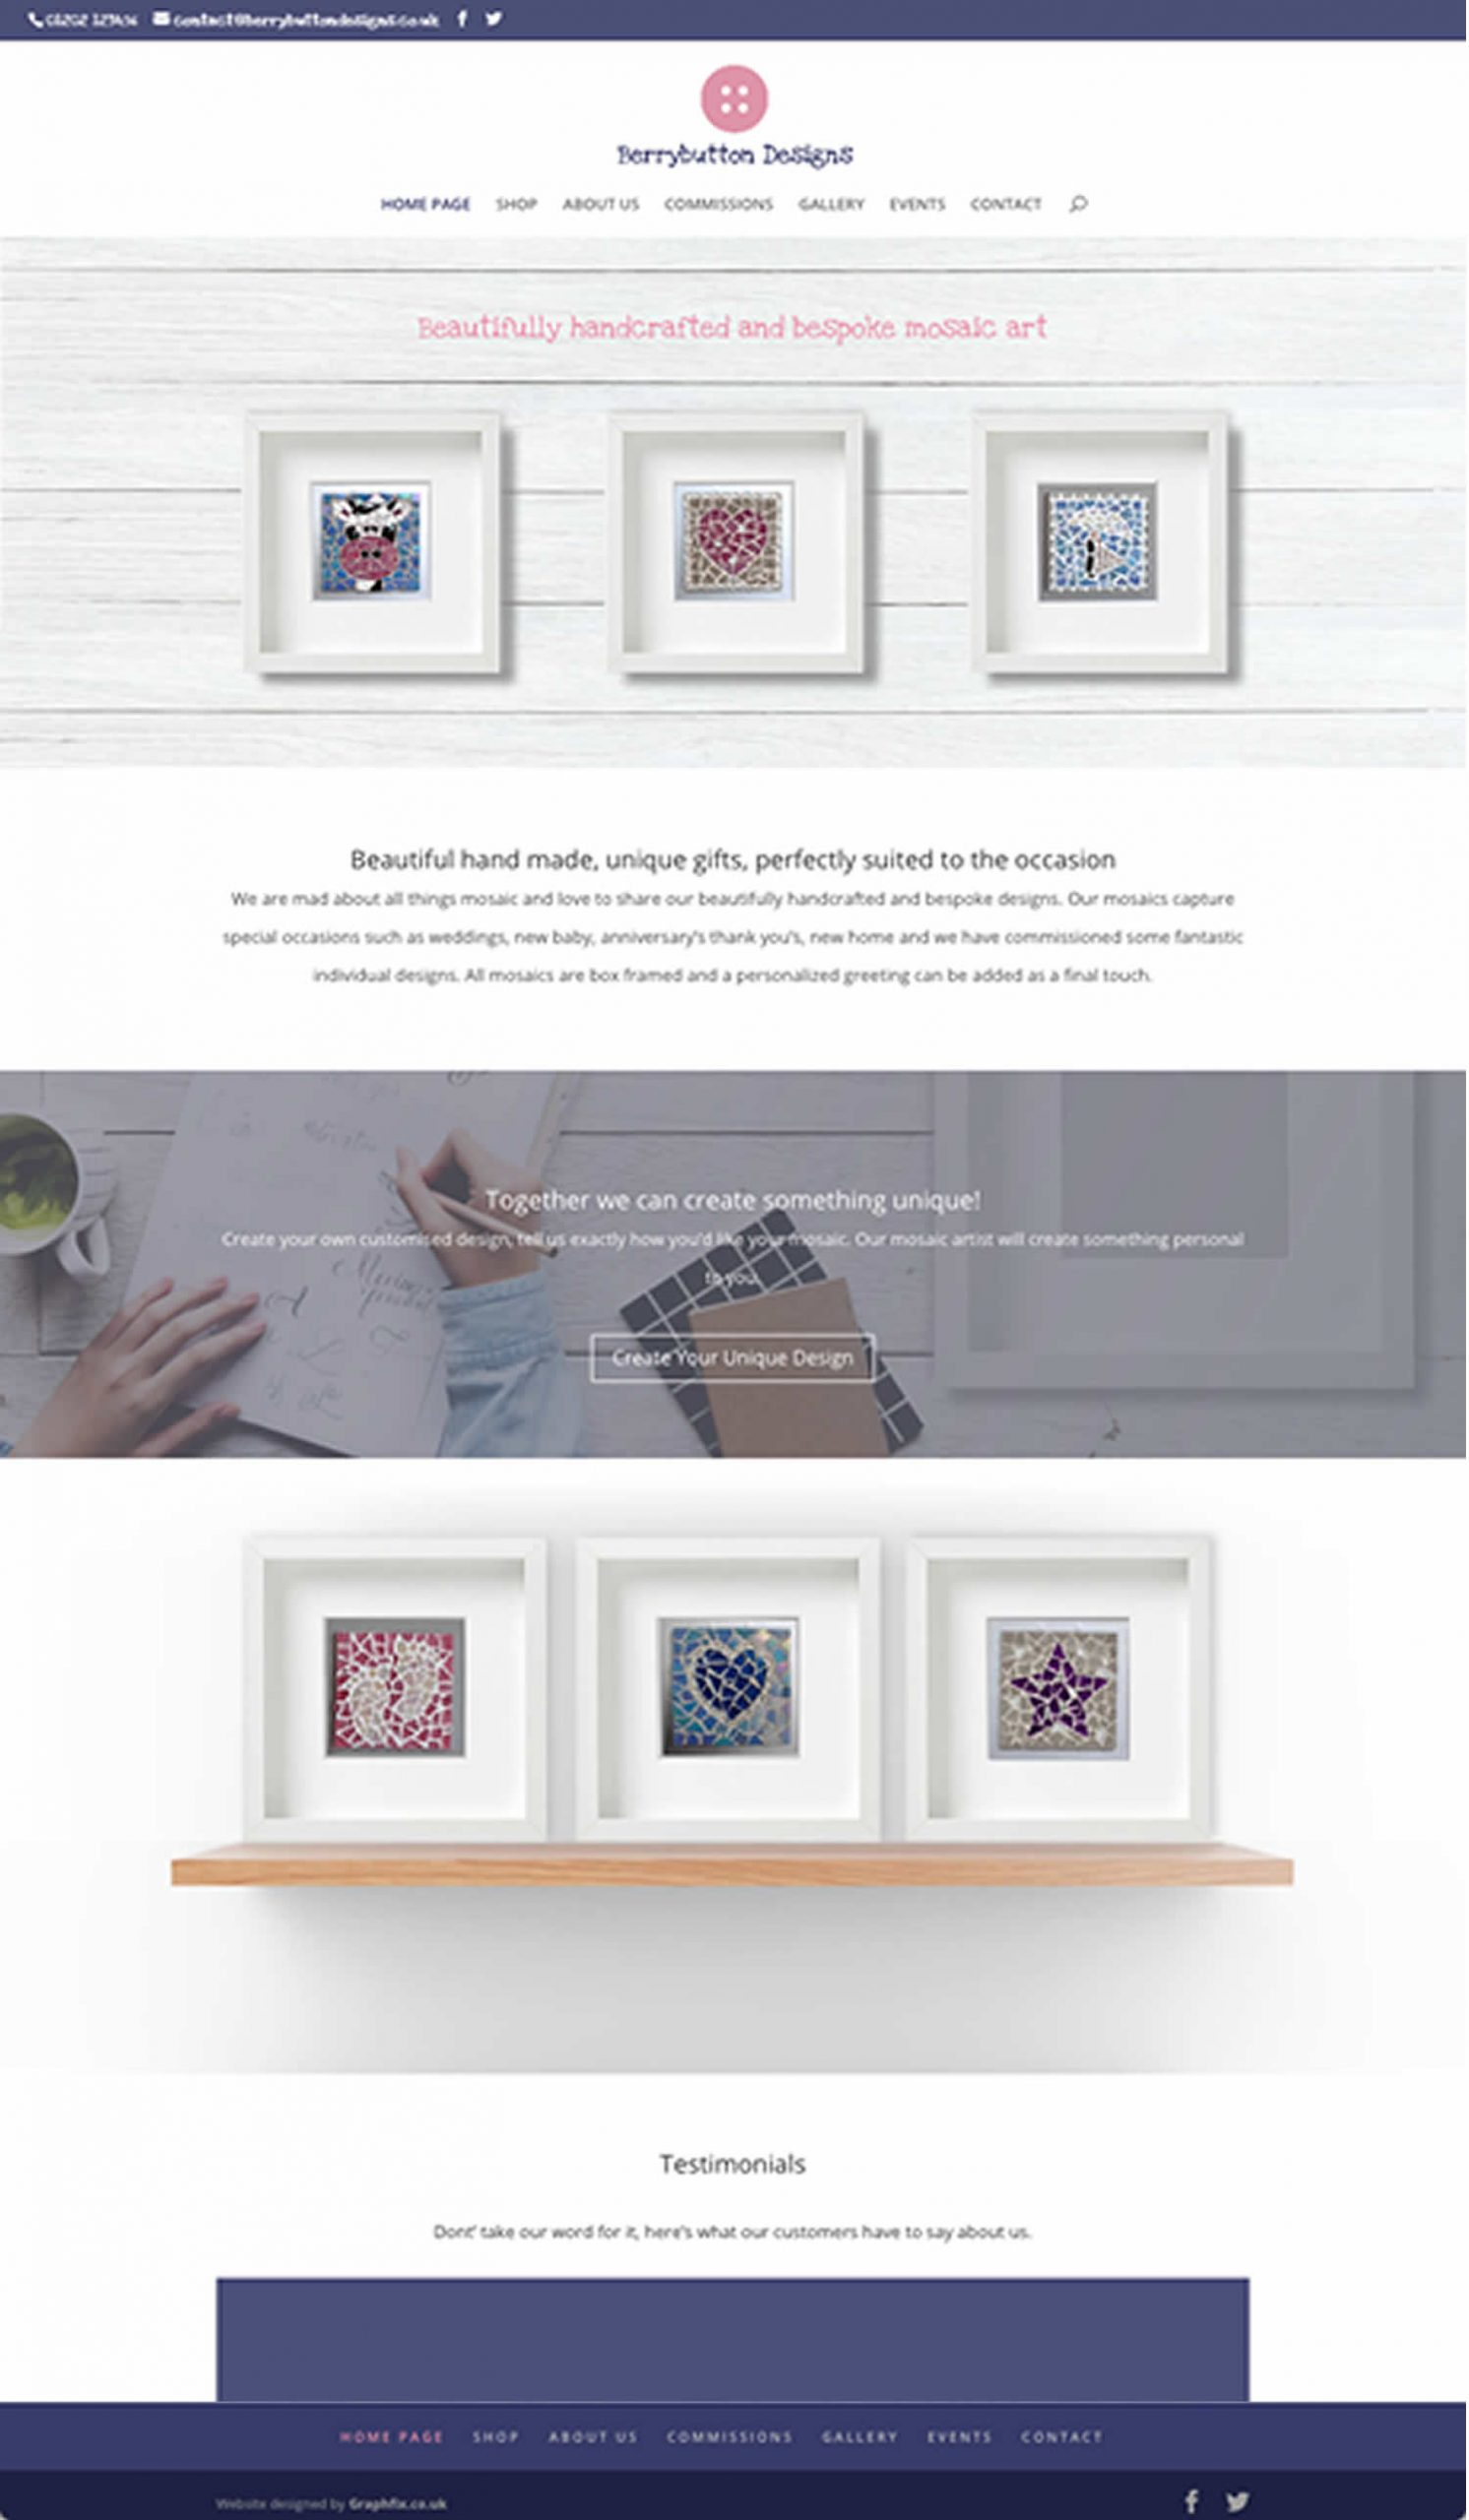 Website layout designed and created for Berrybutton Designs based in Ferndown, Dorset